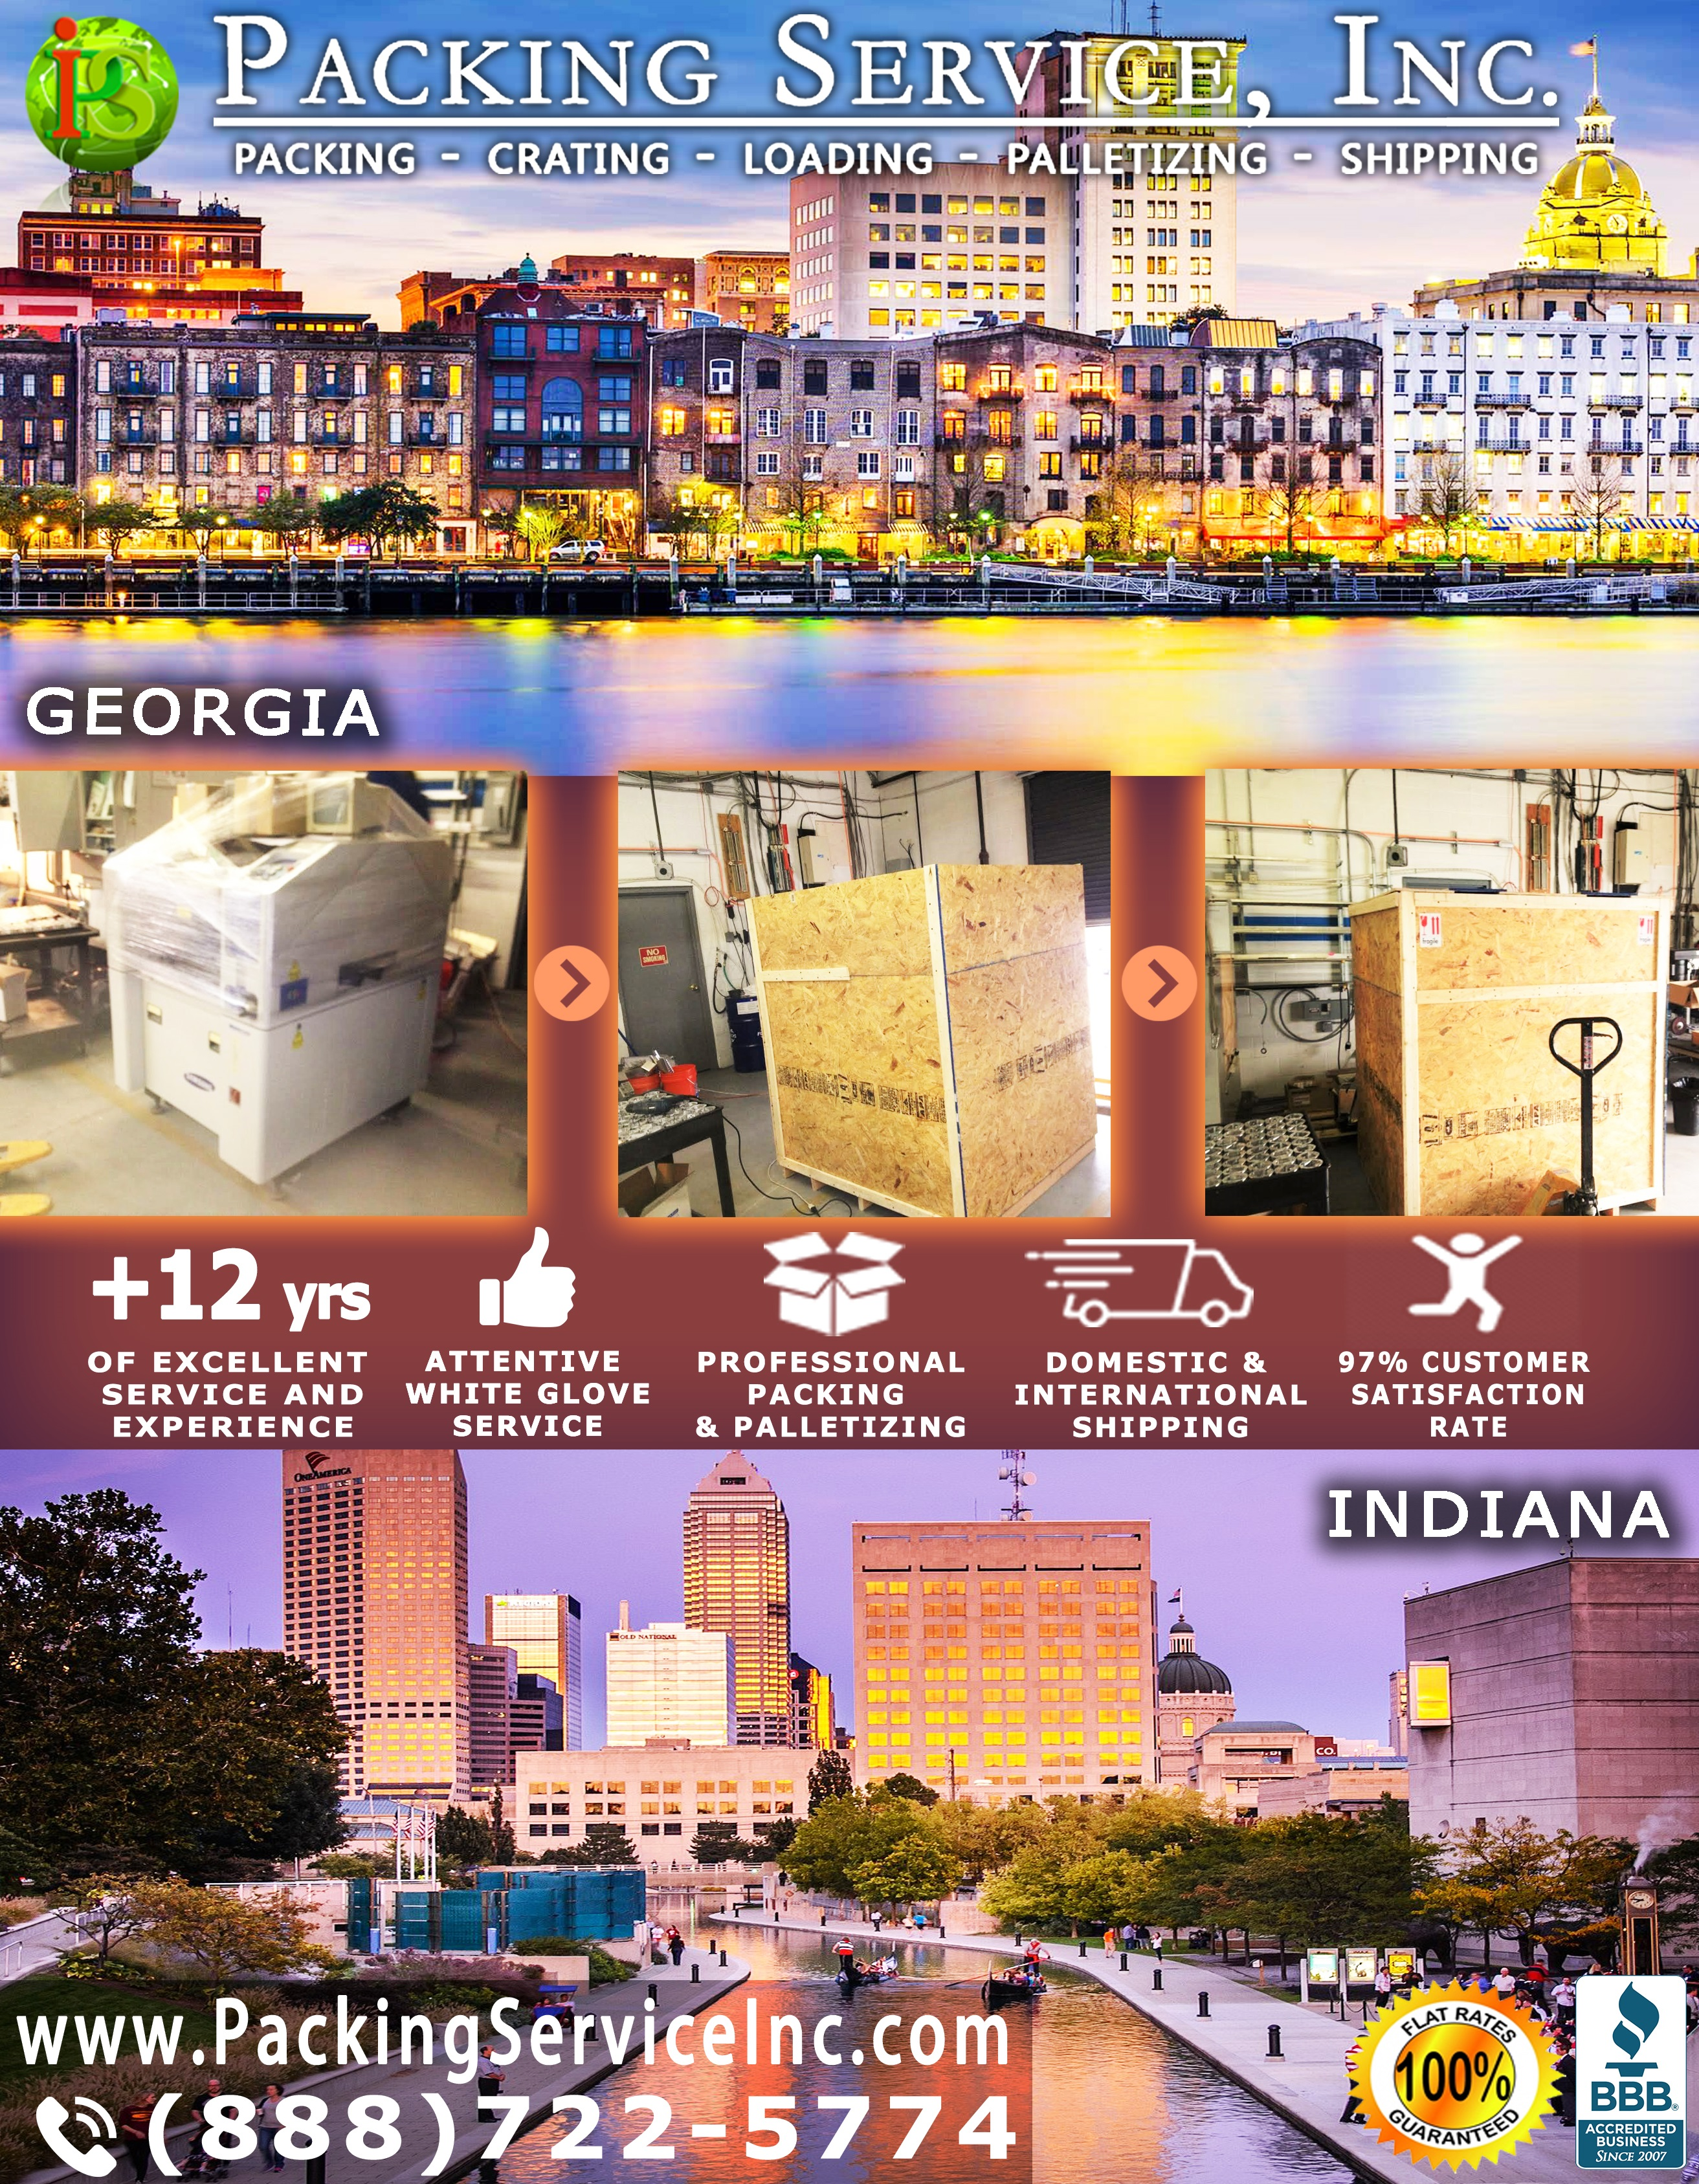 wrapping-a-printer-custom-crate-and-shipping-from-indiana-to-georgia-with-packing-service-inc-695